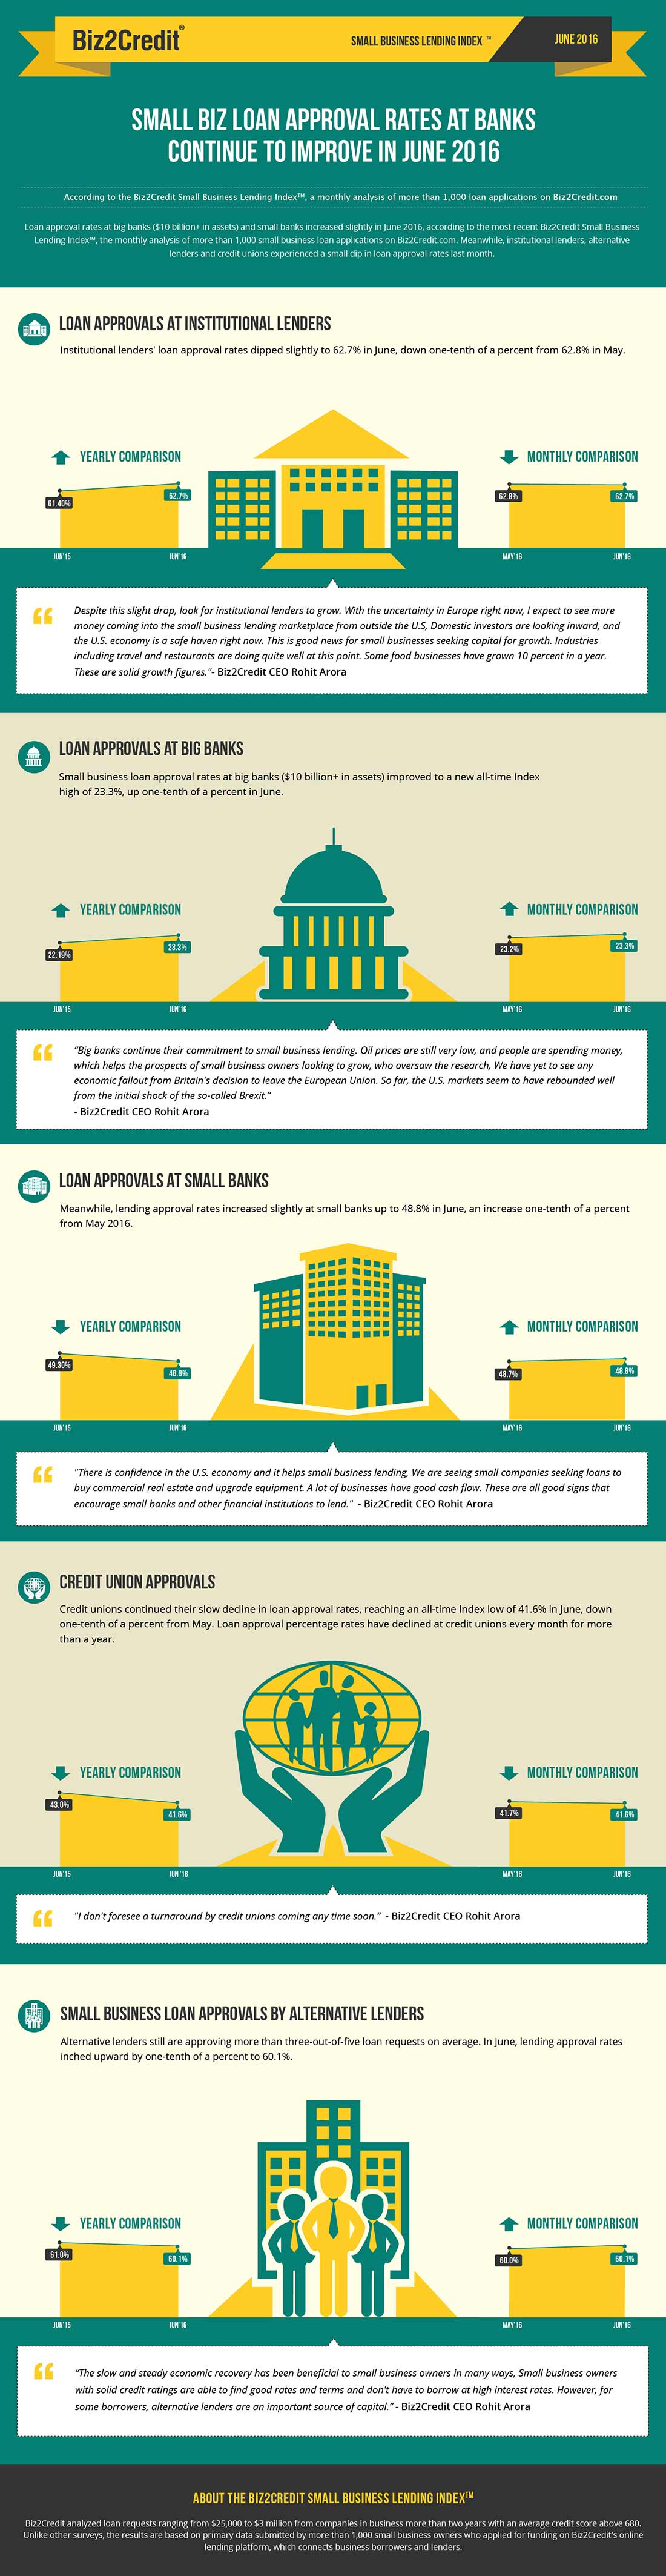 june16 Lending Index Infographic